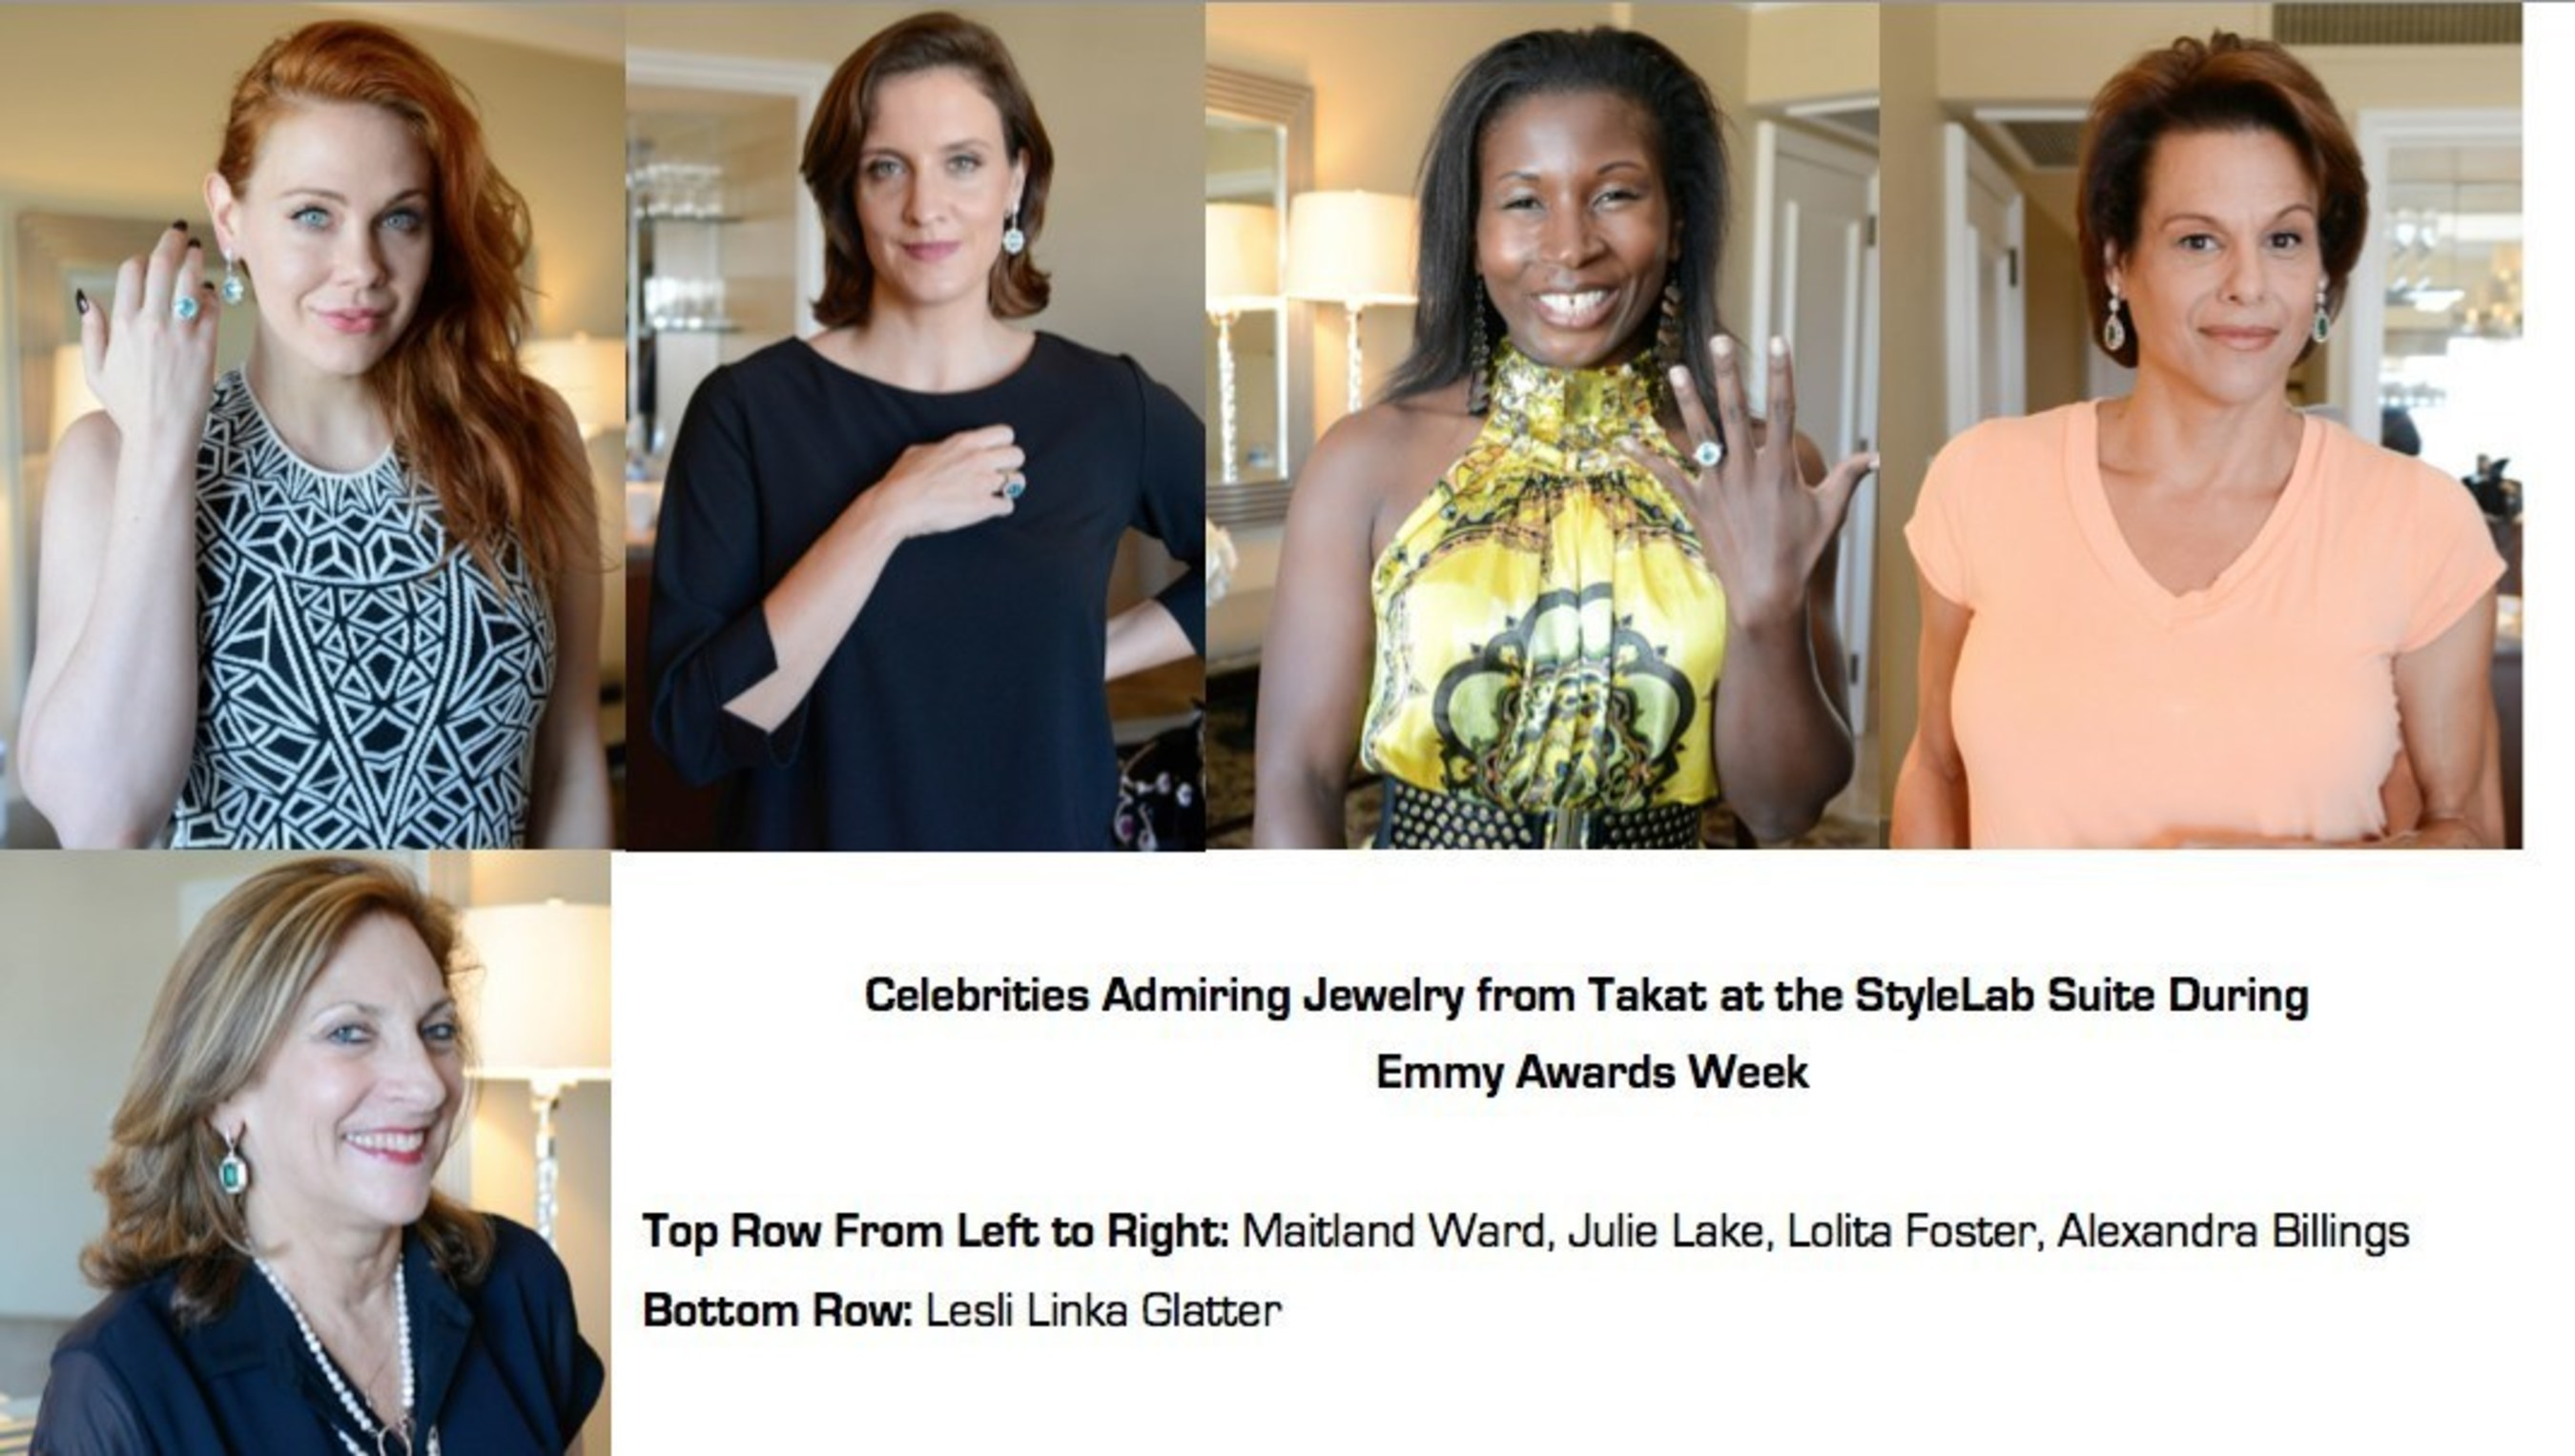 Celebrities And Their Stylists Previewed Jewelry From Takat At StyleLab's Suite During Emmy Awards Week